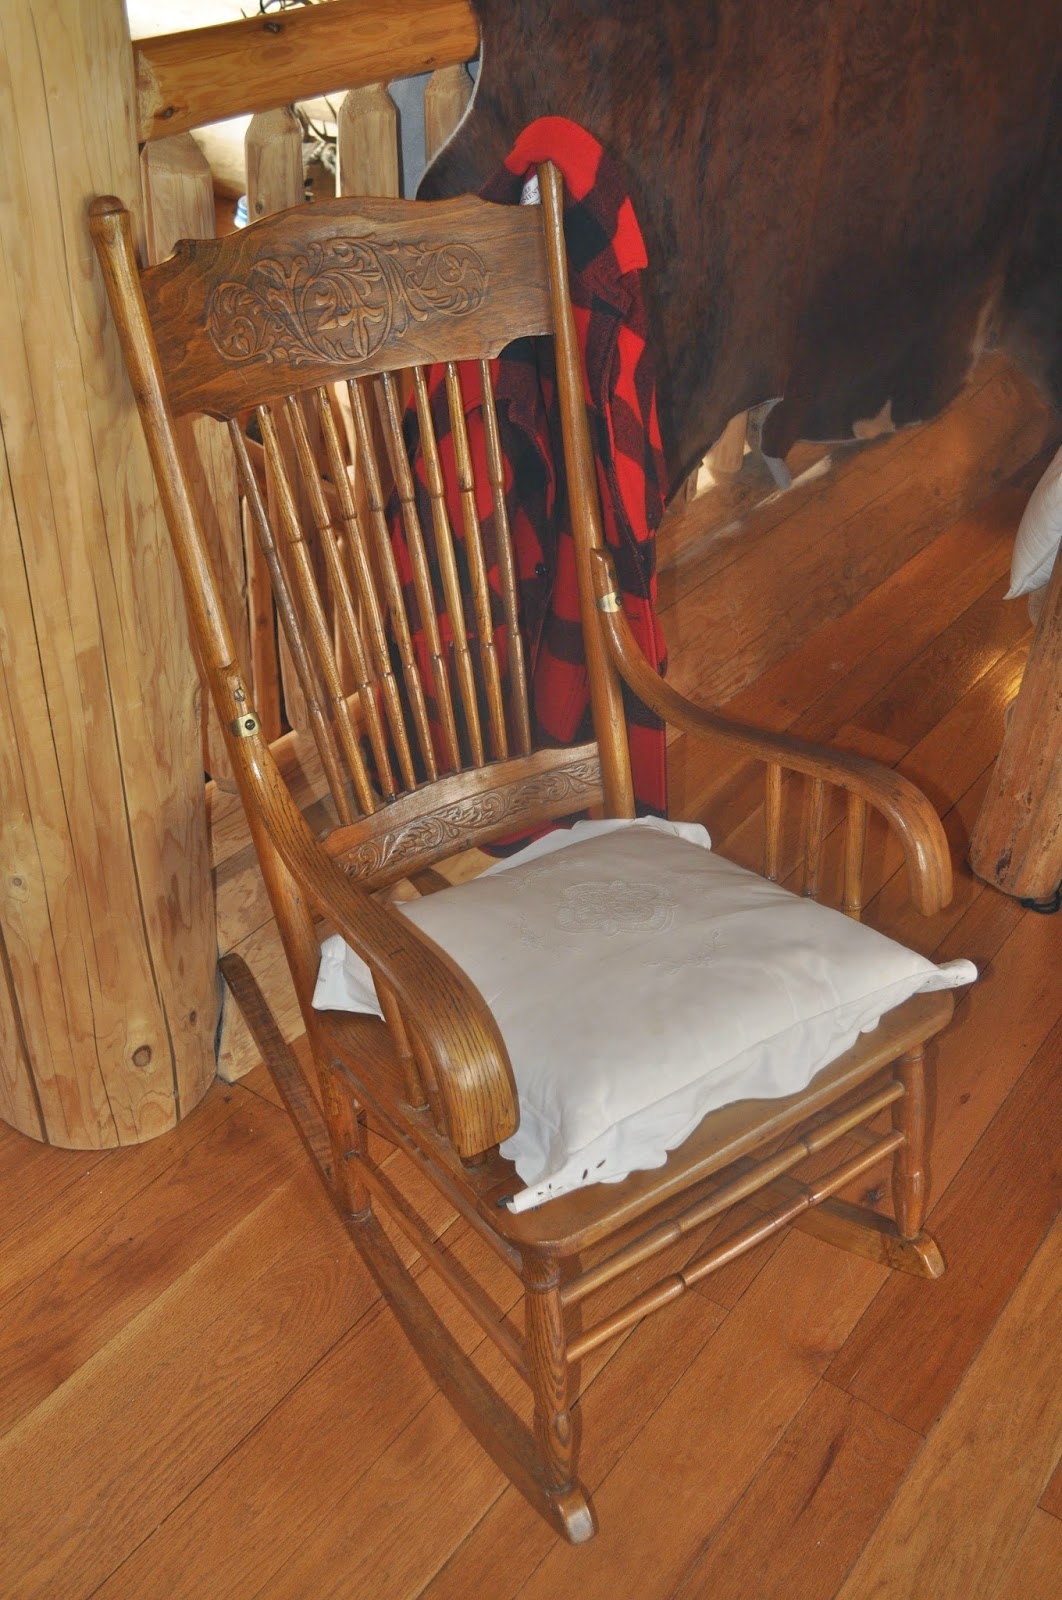 Aunt Priscilla Has A Rocking Chair Navy Blue Desk Old And Ridiculous